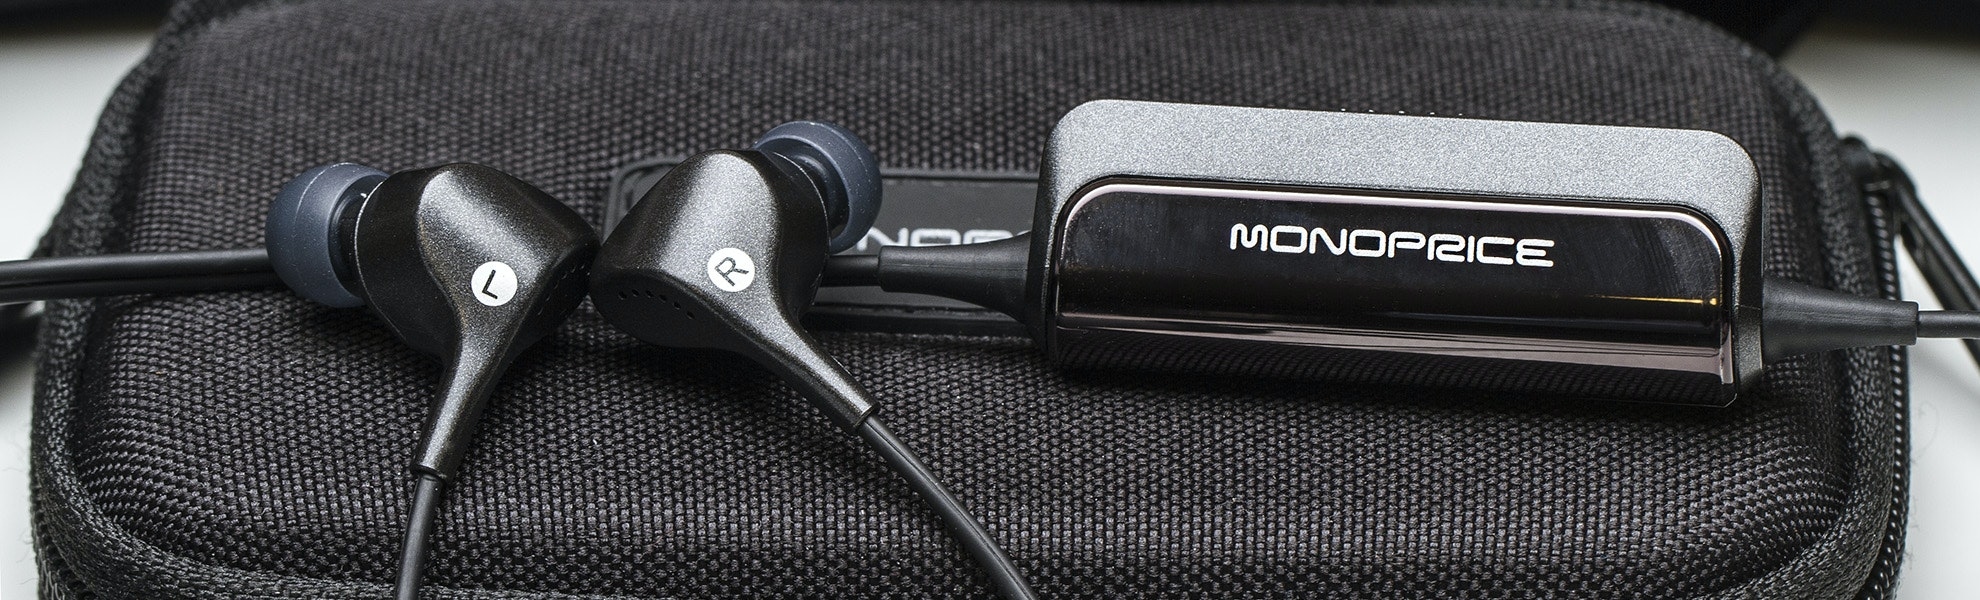 Monoprice Noise Canceling Headphones